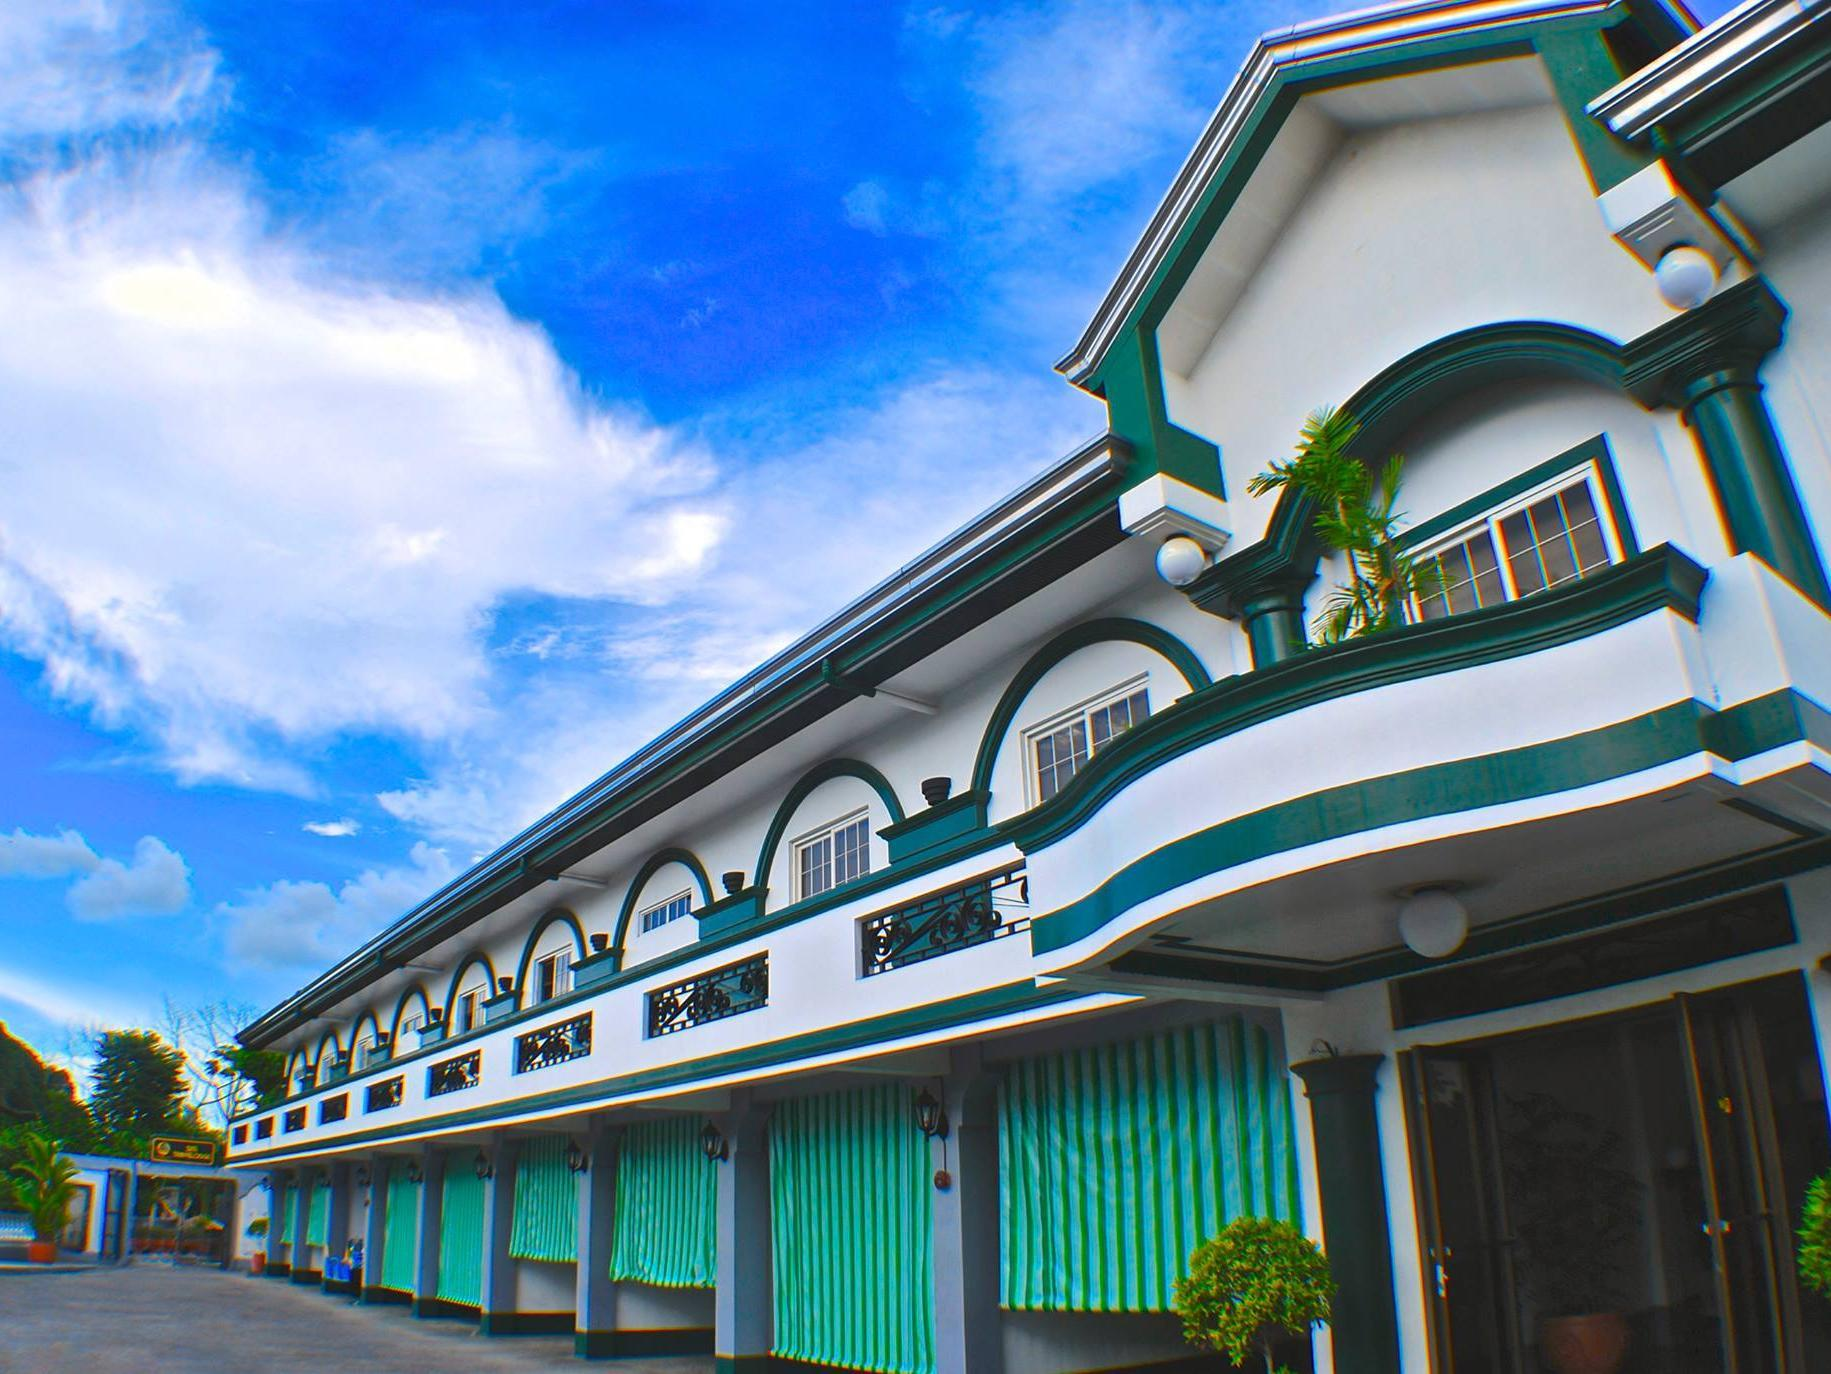 OYO 407 SM Travelodge, Batangas City